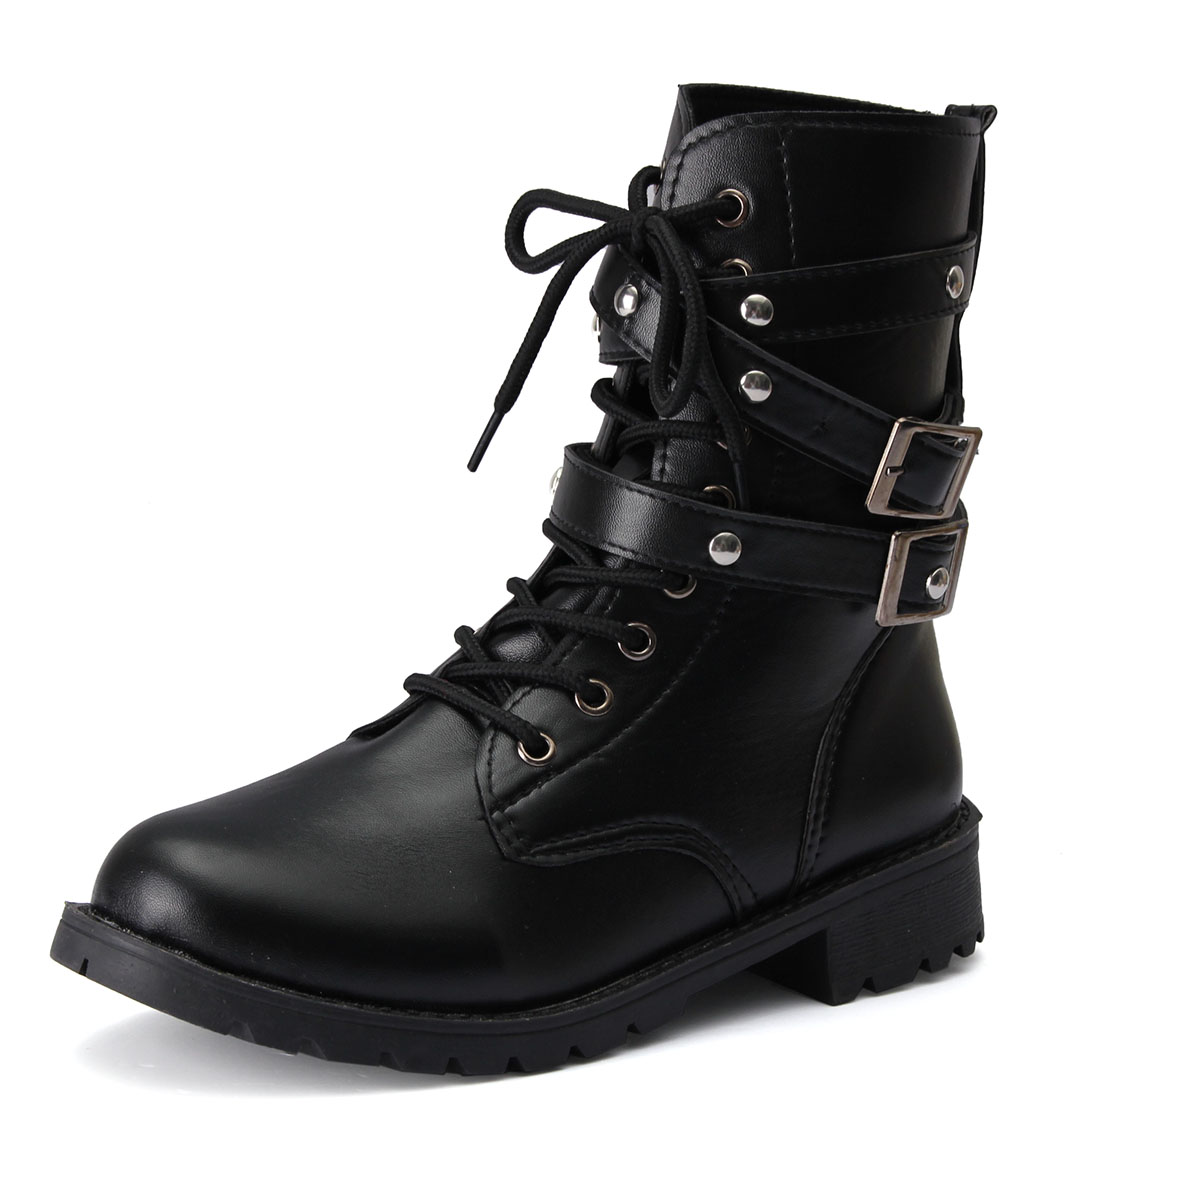 Cheap Combat Boots For Women 25xOgDEl